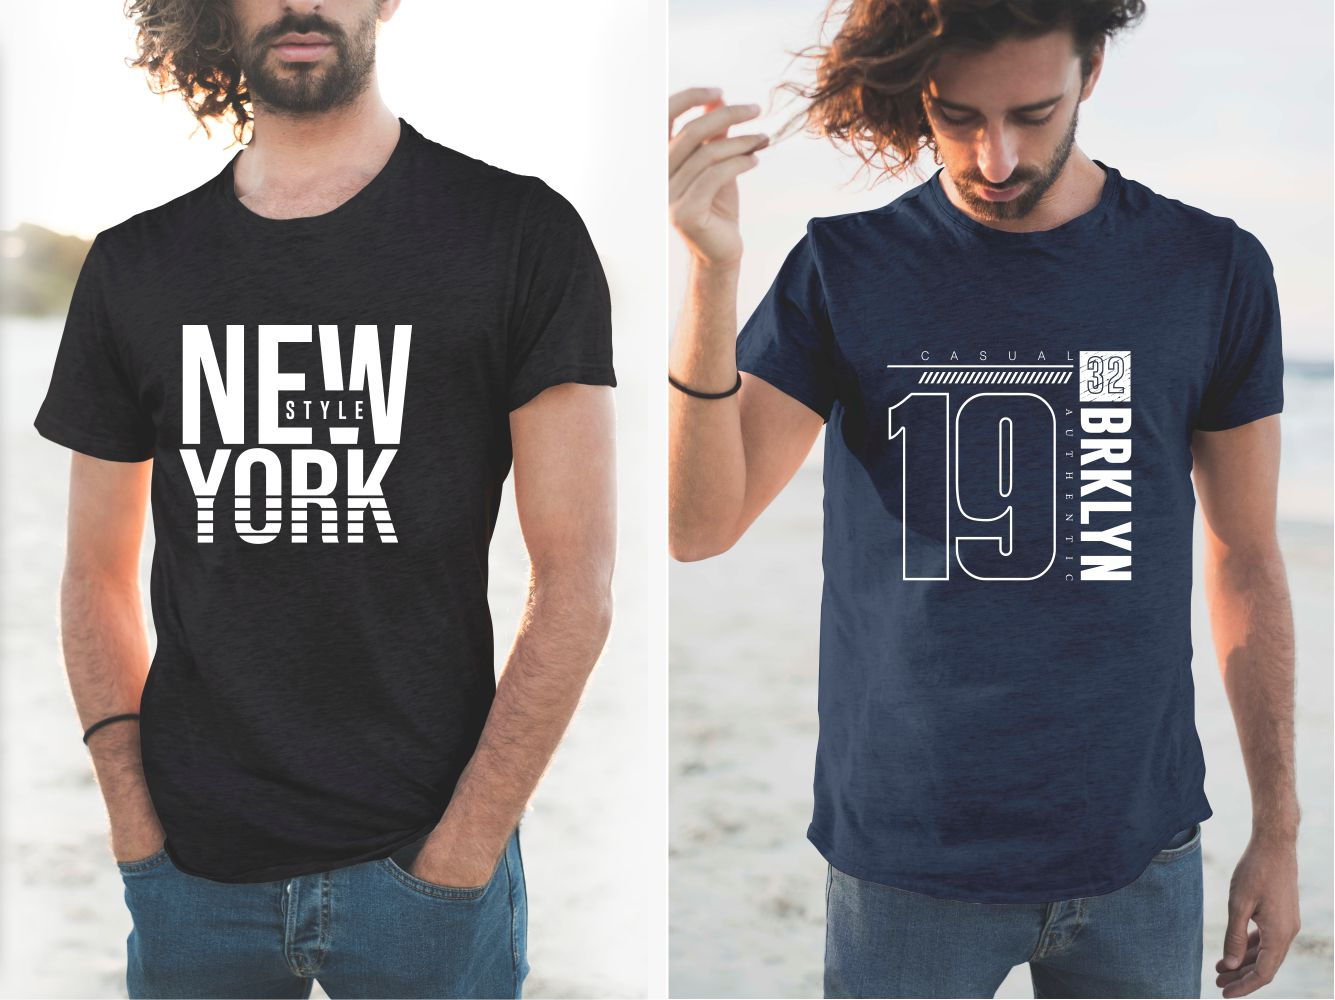 T-shirts with a classic cut in dark colors with a minimalist design.